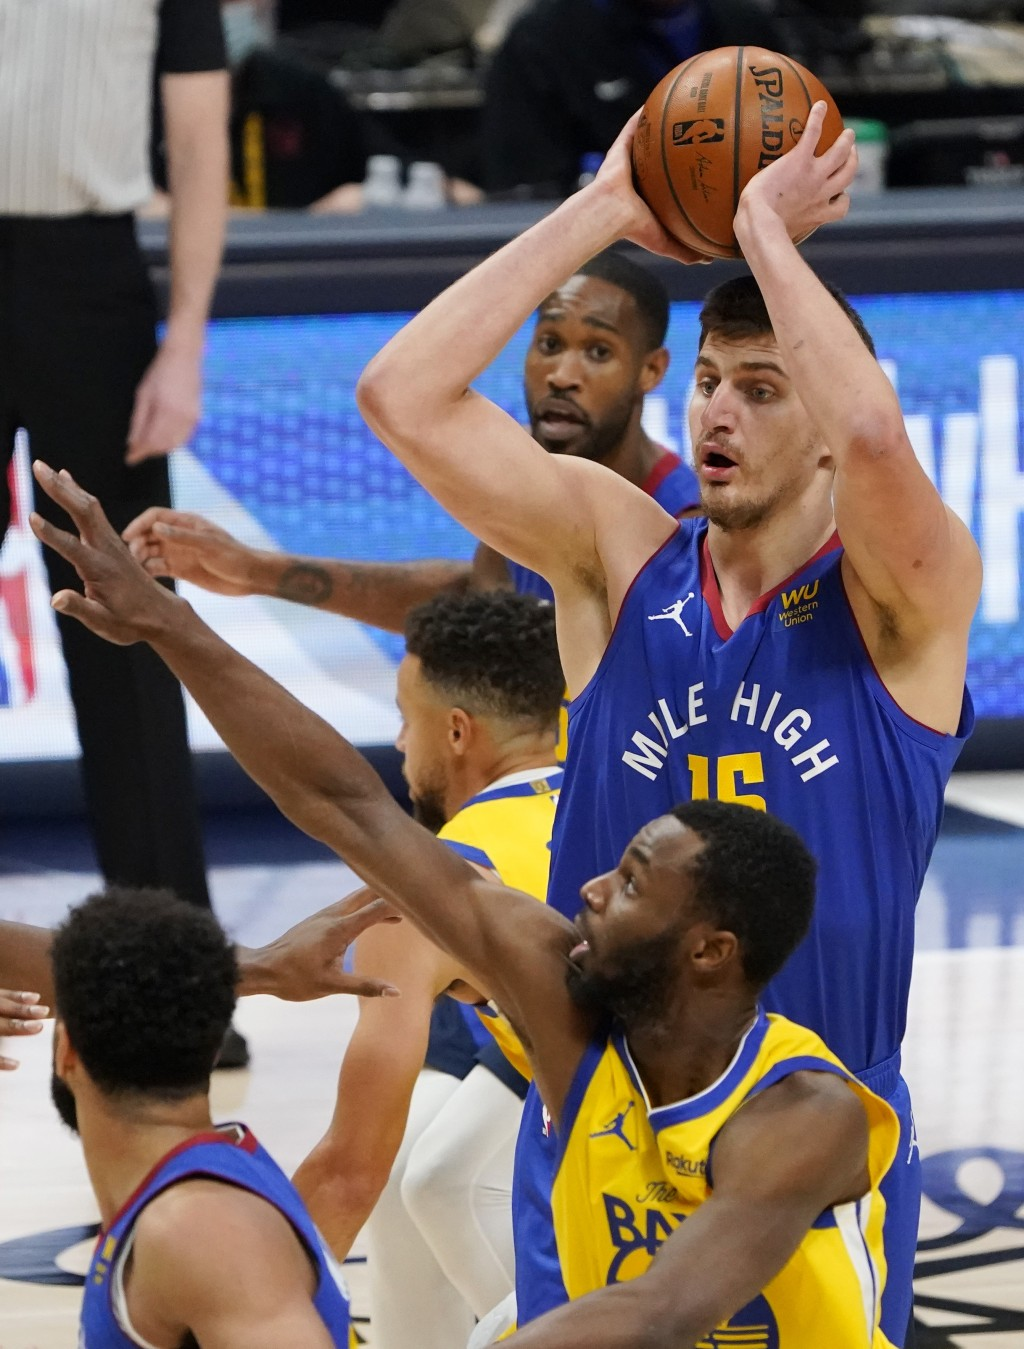 Denver Nuggets center Nikola Jokic, back, looks to pass the ball as Golden State Warriors forward Andrew Wiggins defends in the first half of an NBA b...